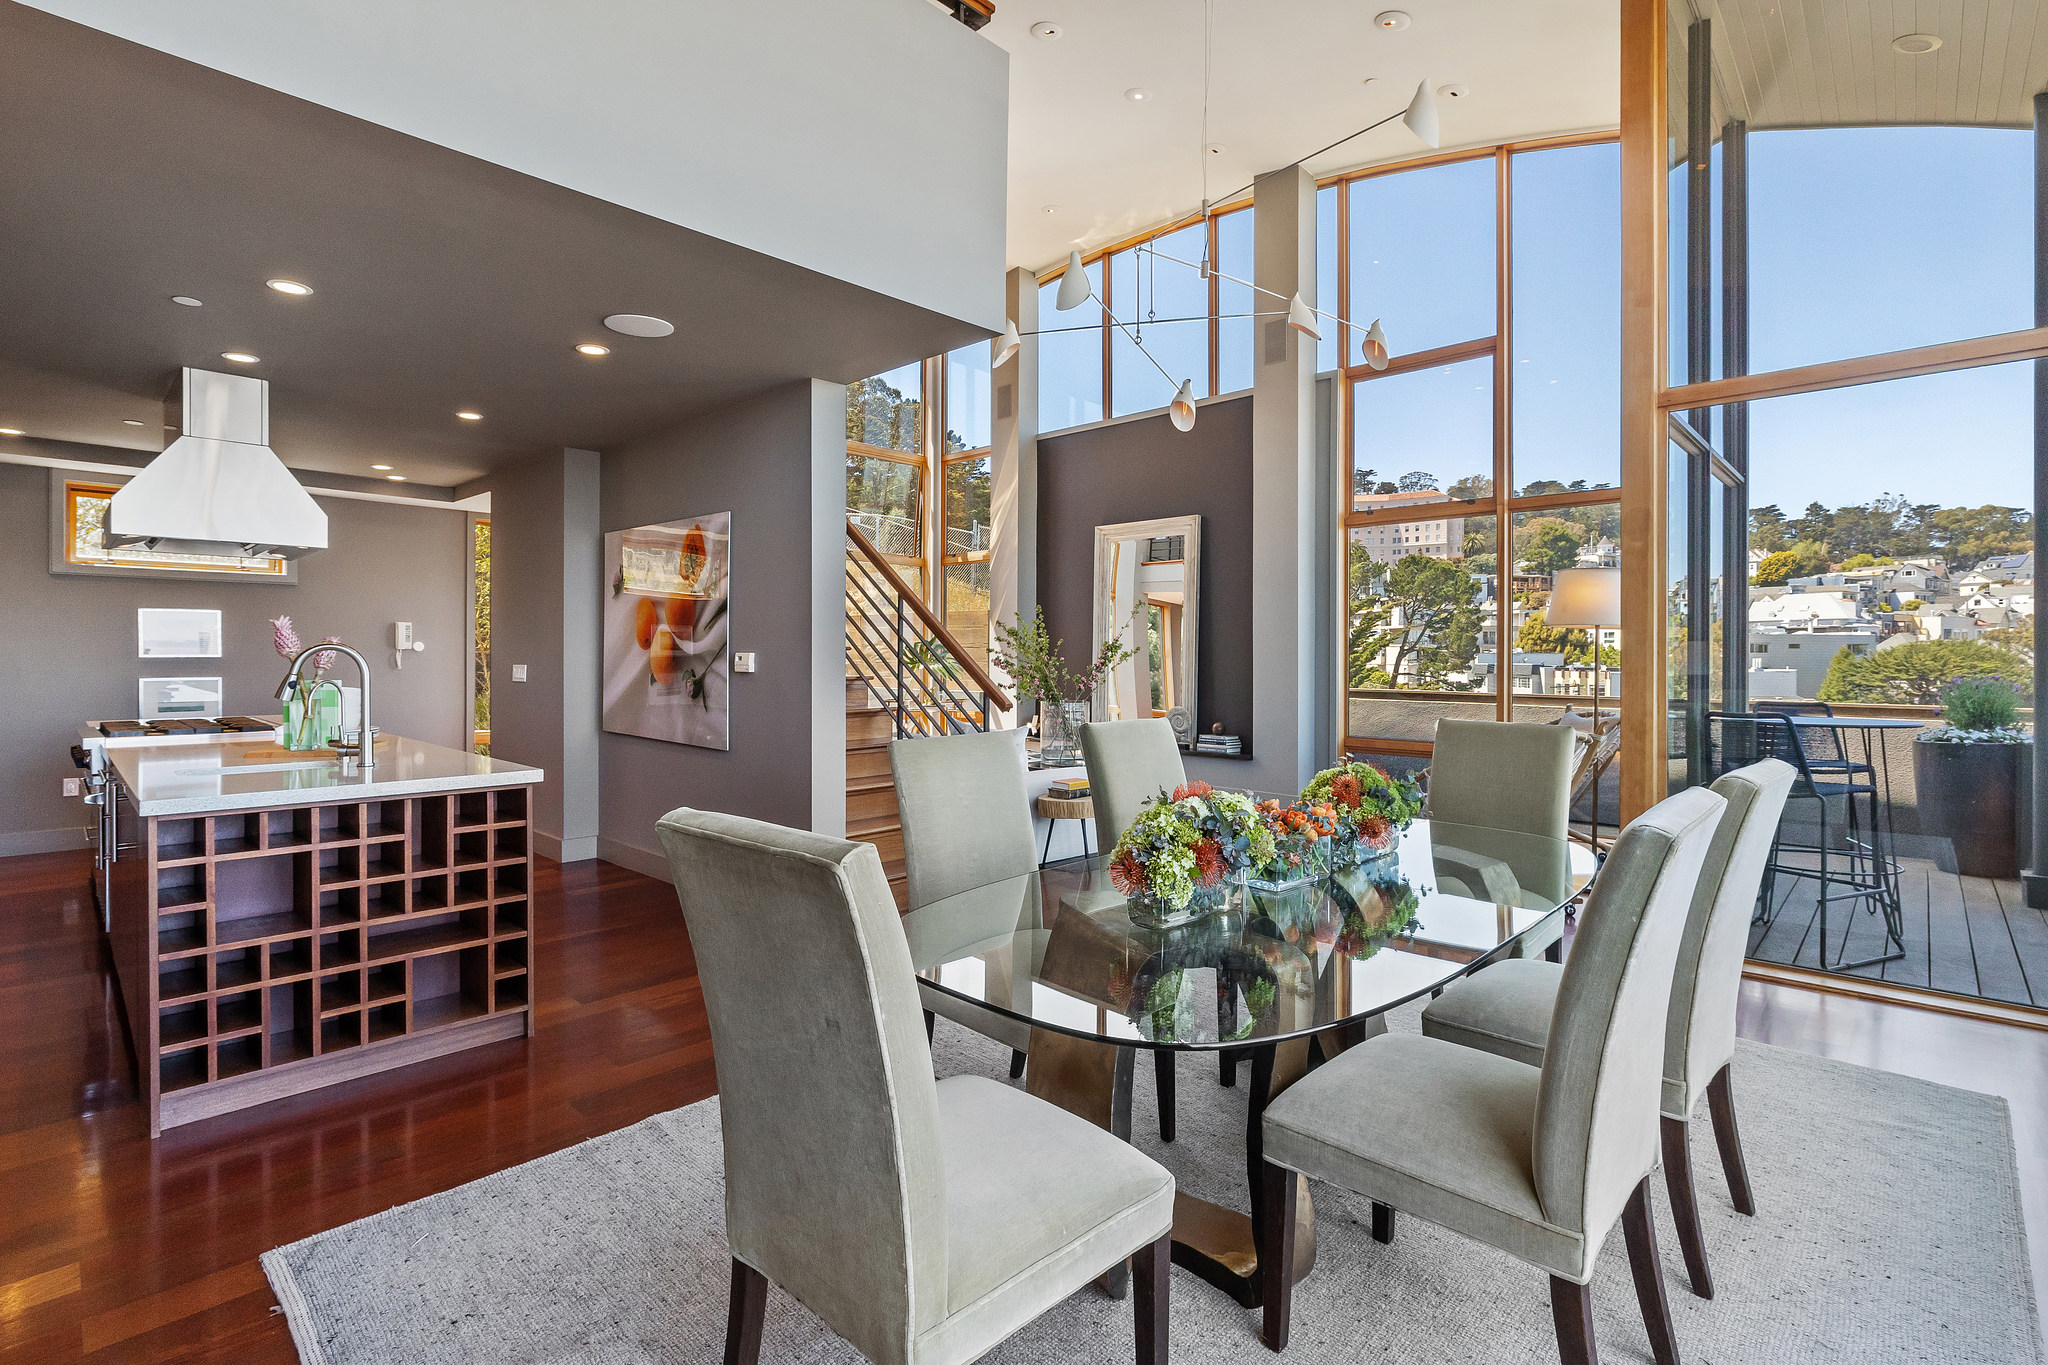 Dining room set with view of modern kitchen behind it